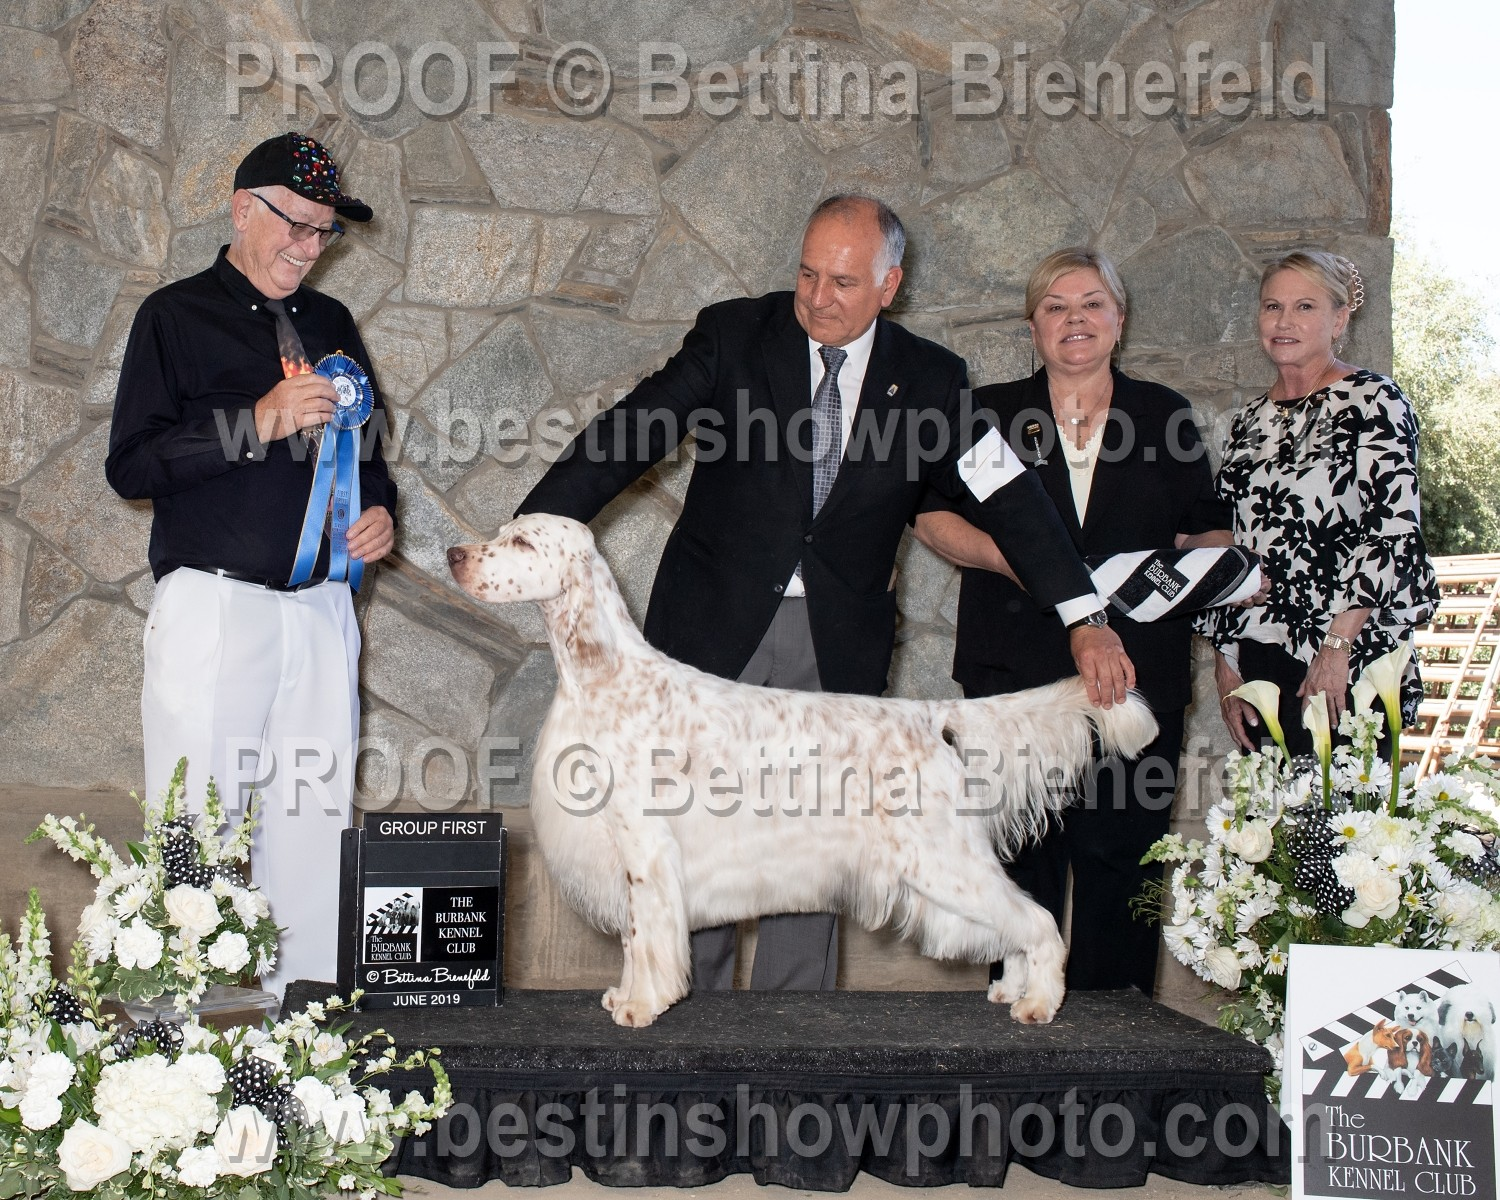 The Burbank Kennel Club ~ June 2019